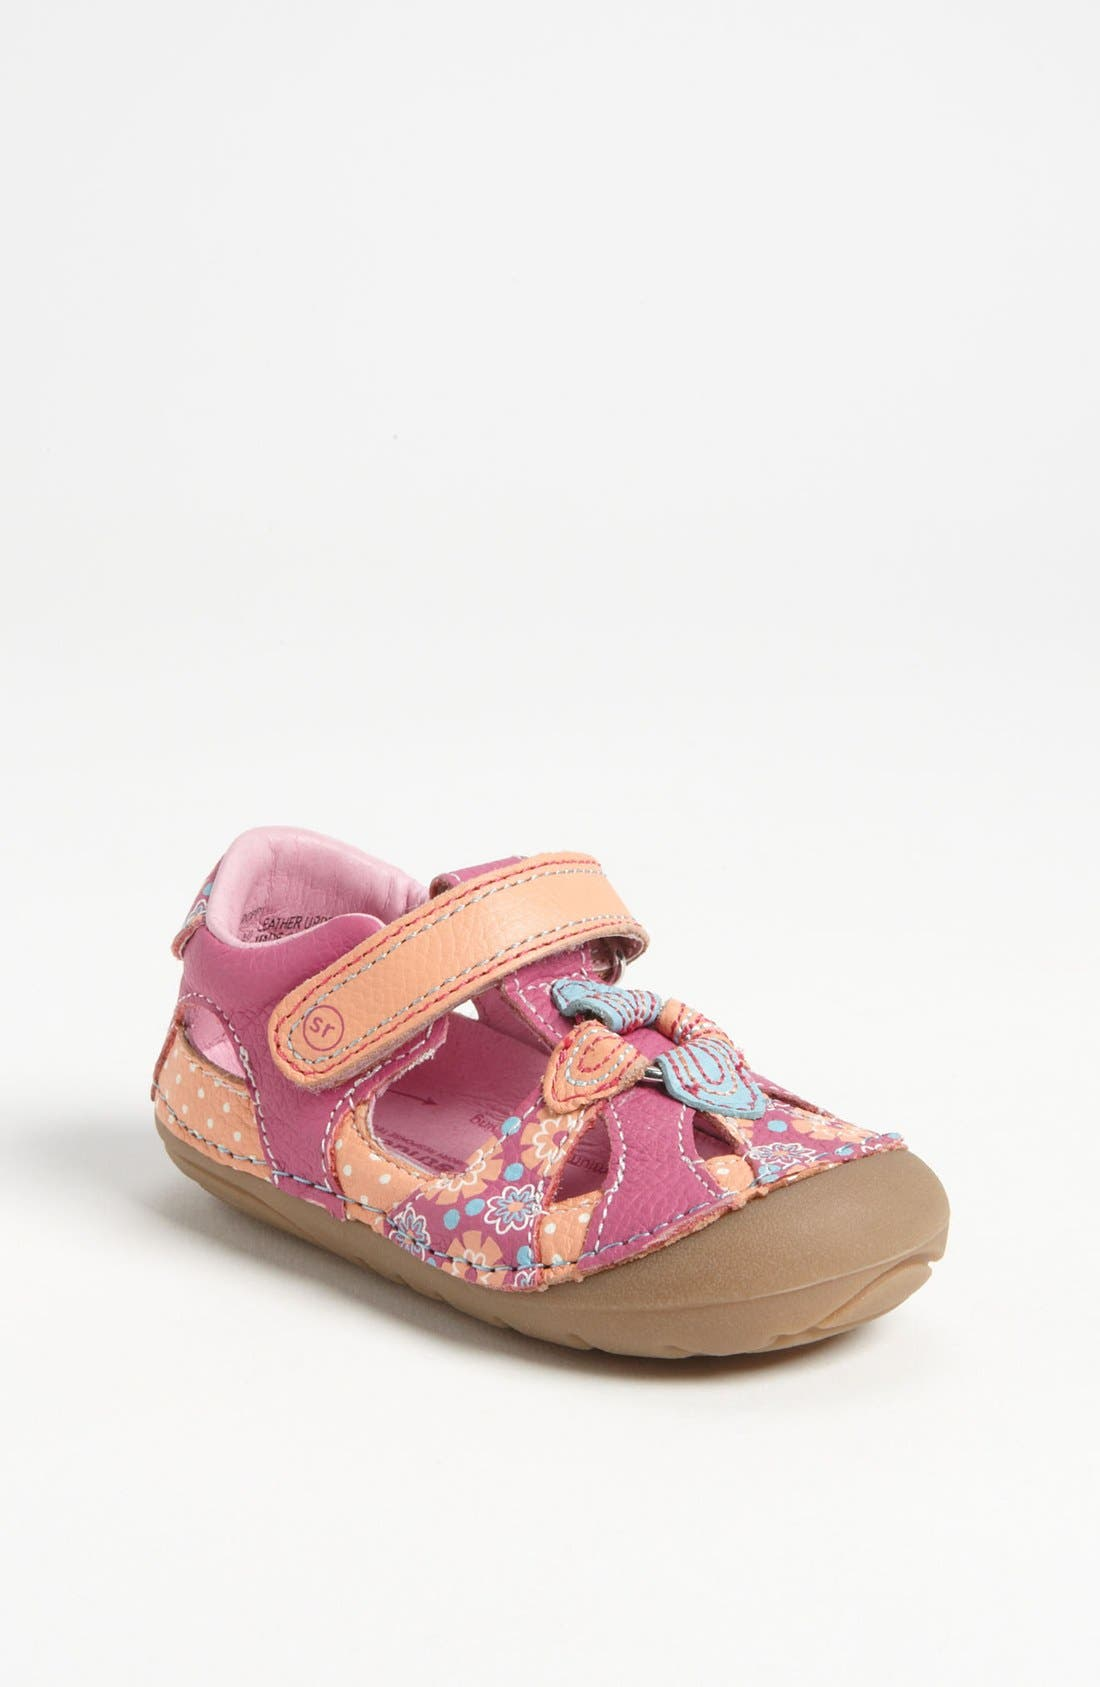 Alternate Image 1 Selected - Stride Rite 'Poppy' Sandal (Baby & Walker)